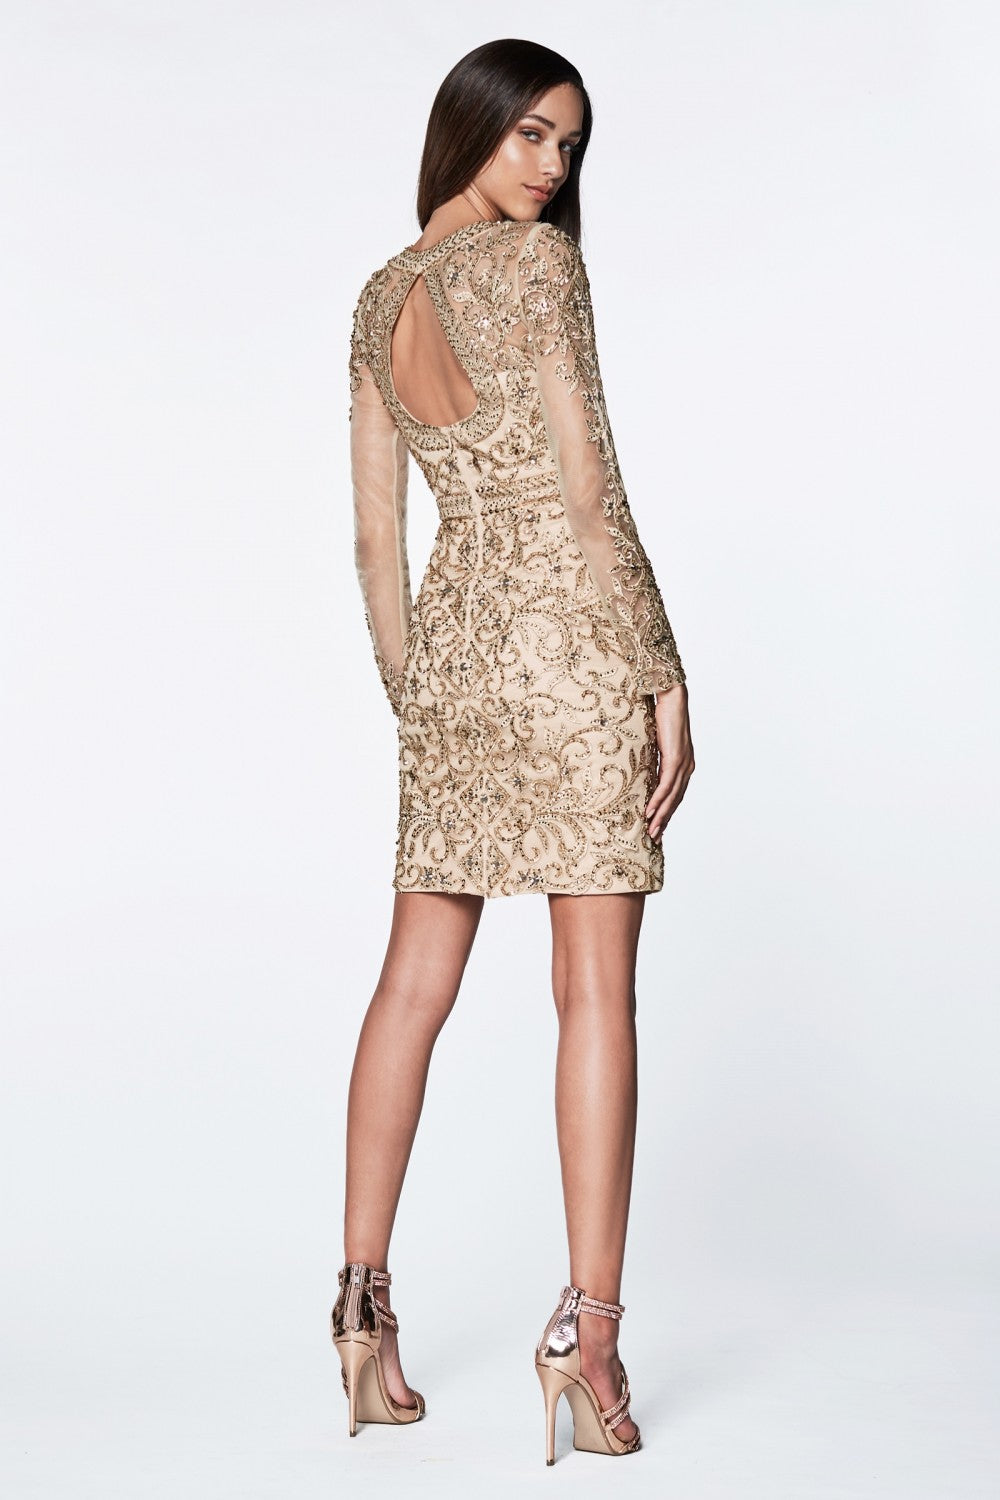 Short Cocktail Gown With Beaded Details And Long Illusions Sleeves